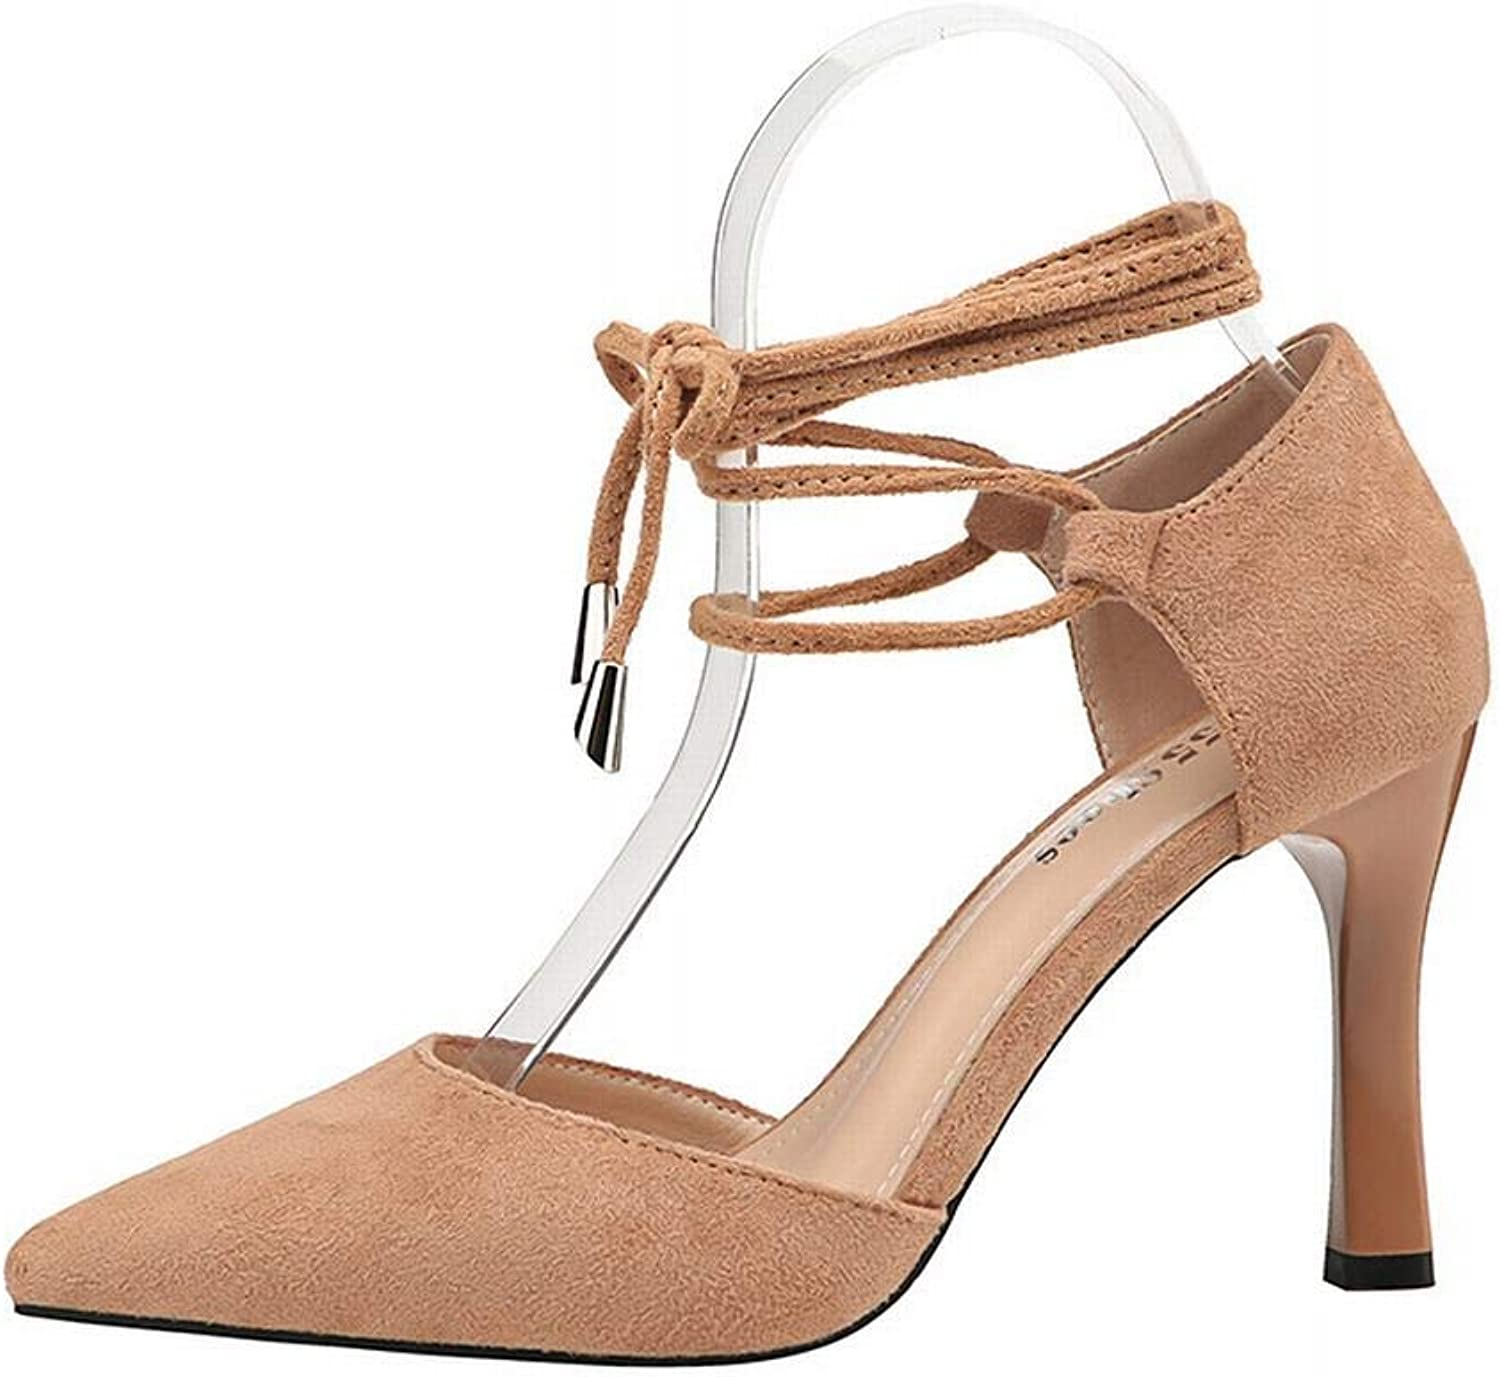 YUKILO Women's High Heel Sandals Fashion Pointed High Heels Sexy Lace Single shoes (color   Khaki, Size   38)